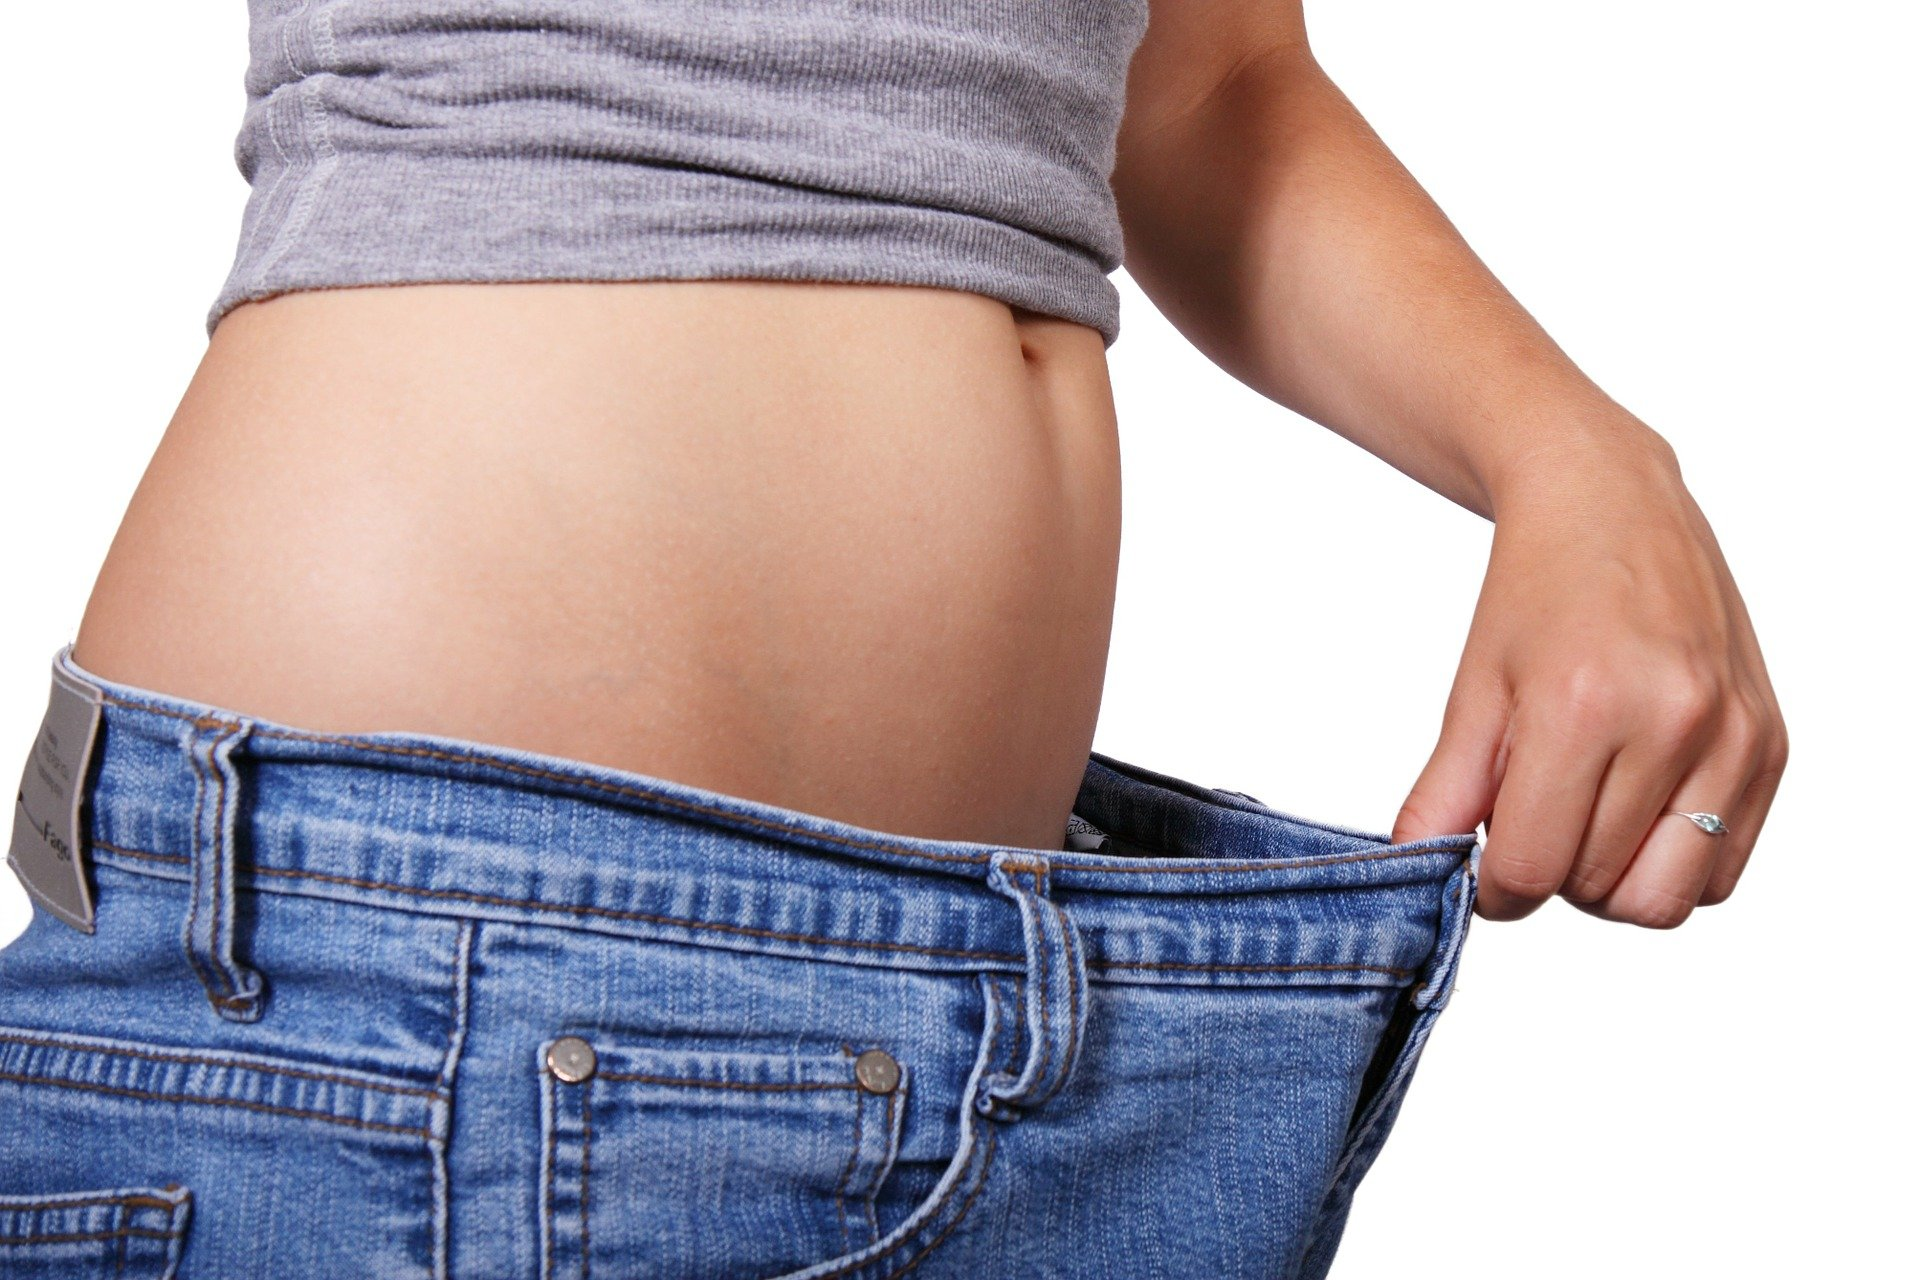 Can you lose weight with the Law of Attraction?